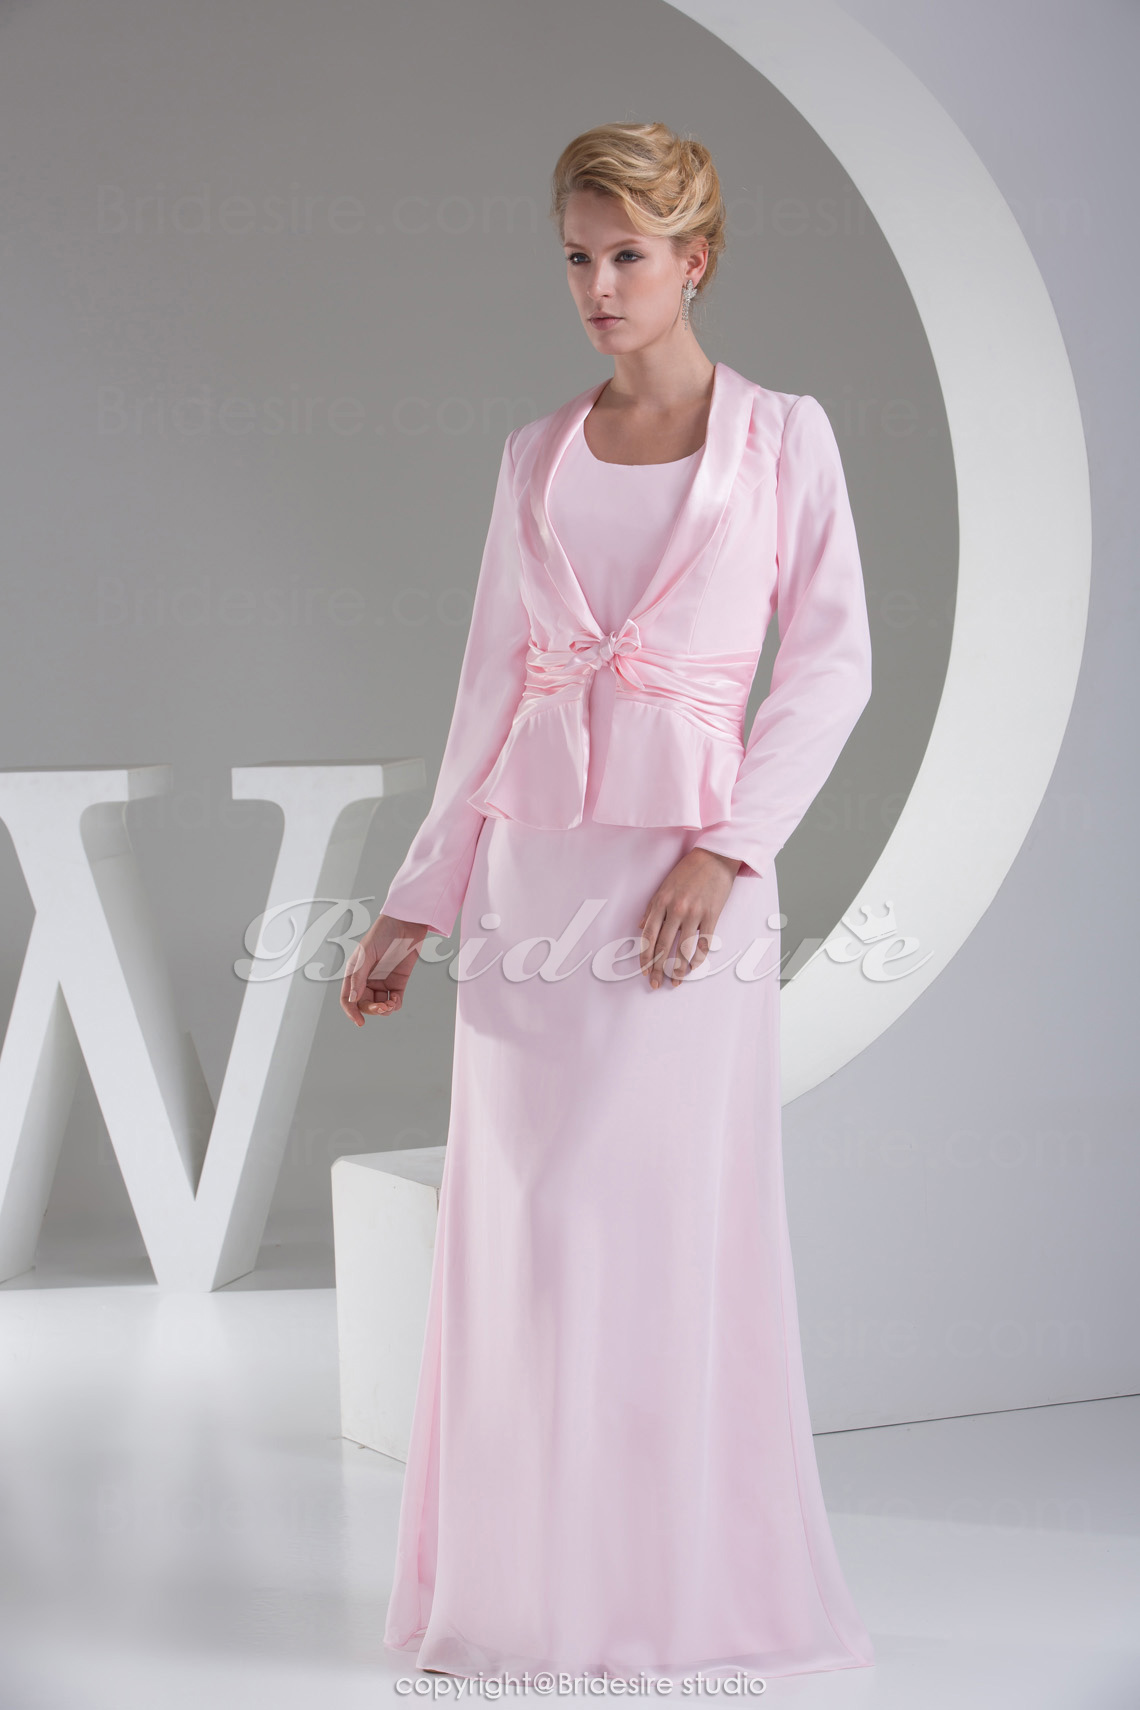 Sheath/Column Scoop Floor-length Long Sleeve Chiffon Stretch Satin Mother of the Bride Dress